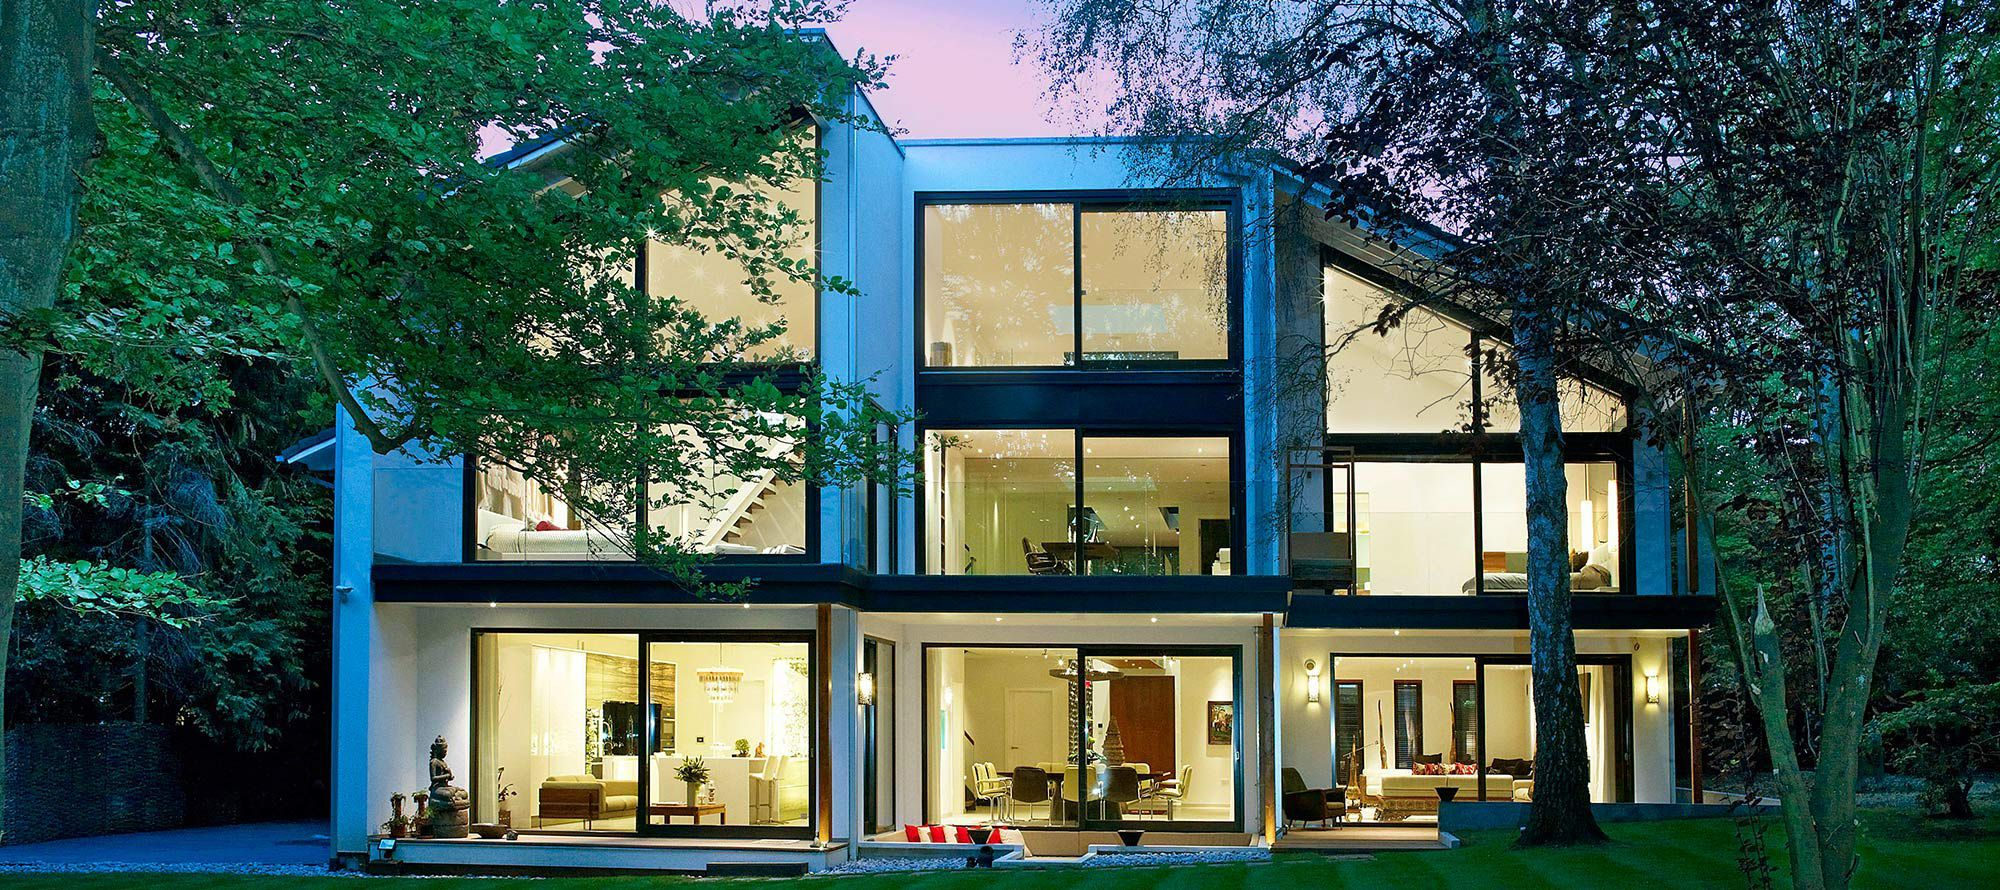 Looking for an energy efficiency home in NH,we design and manufacture standard and most energy efficient homes.:- http://goo.gl/sdopsF #Energy_Efficiency_Home_NH #Insulated_Concrete_Form_NH